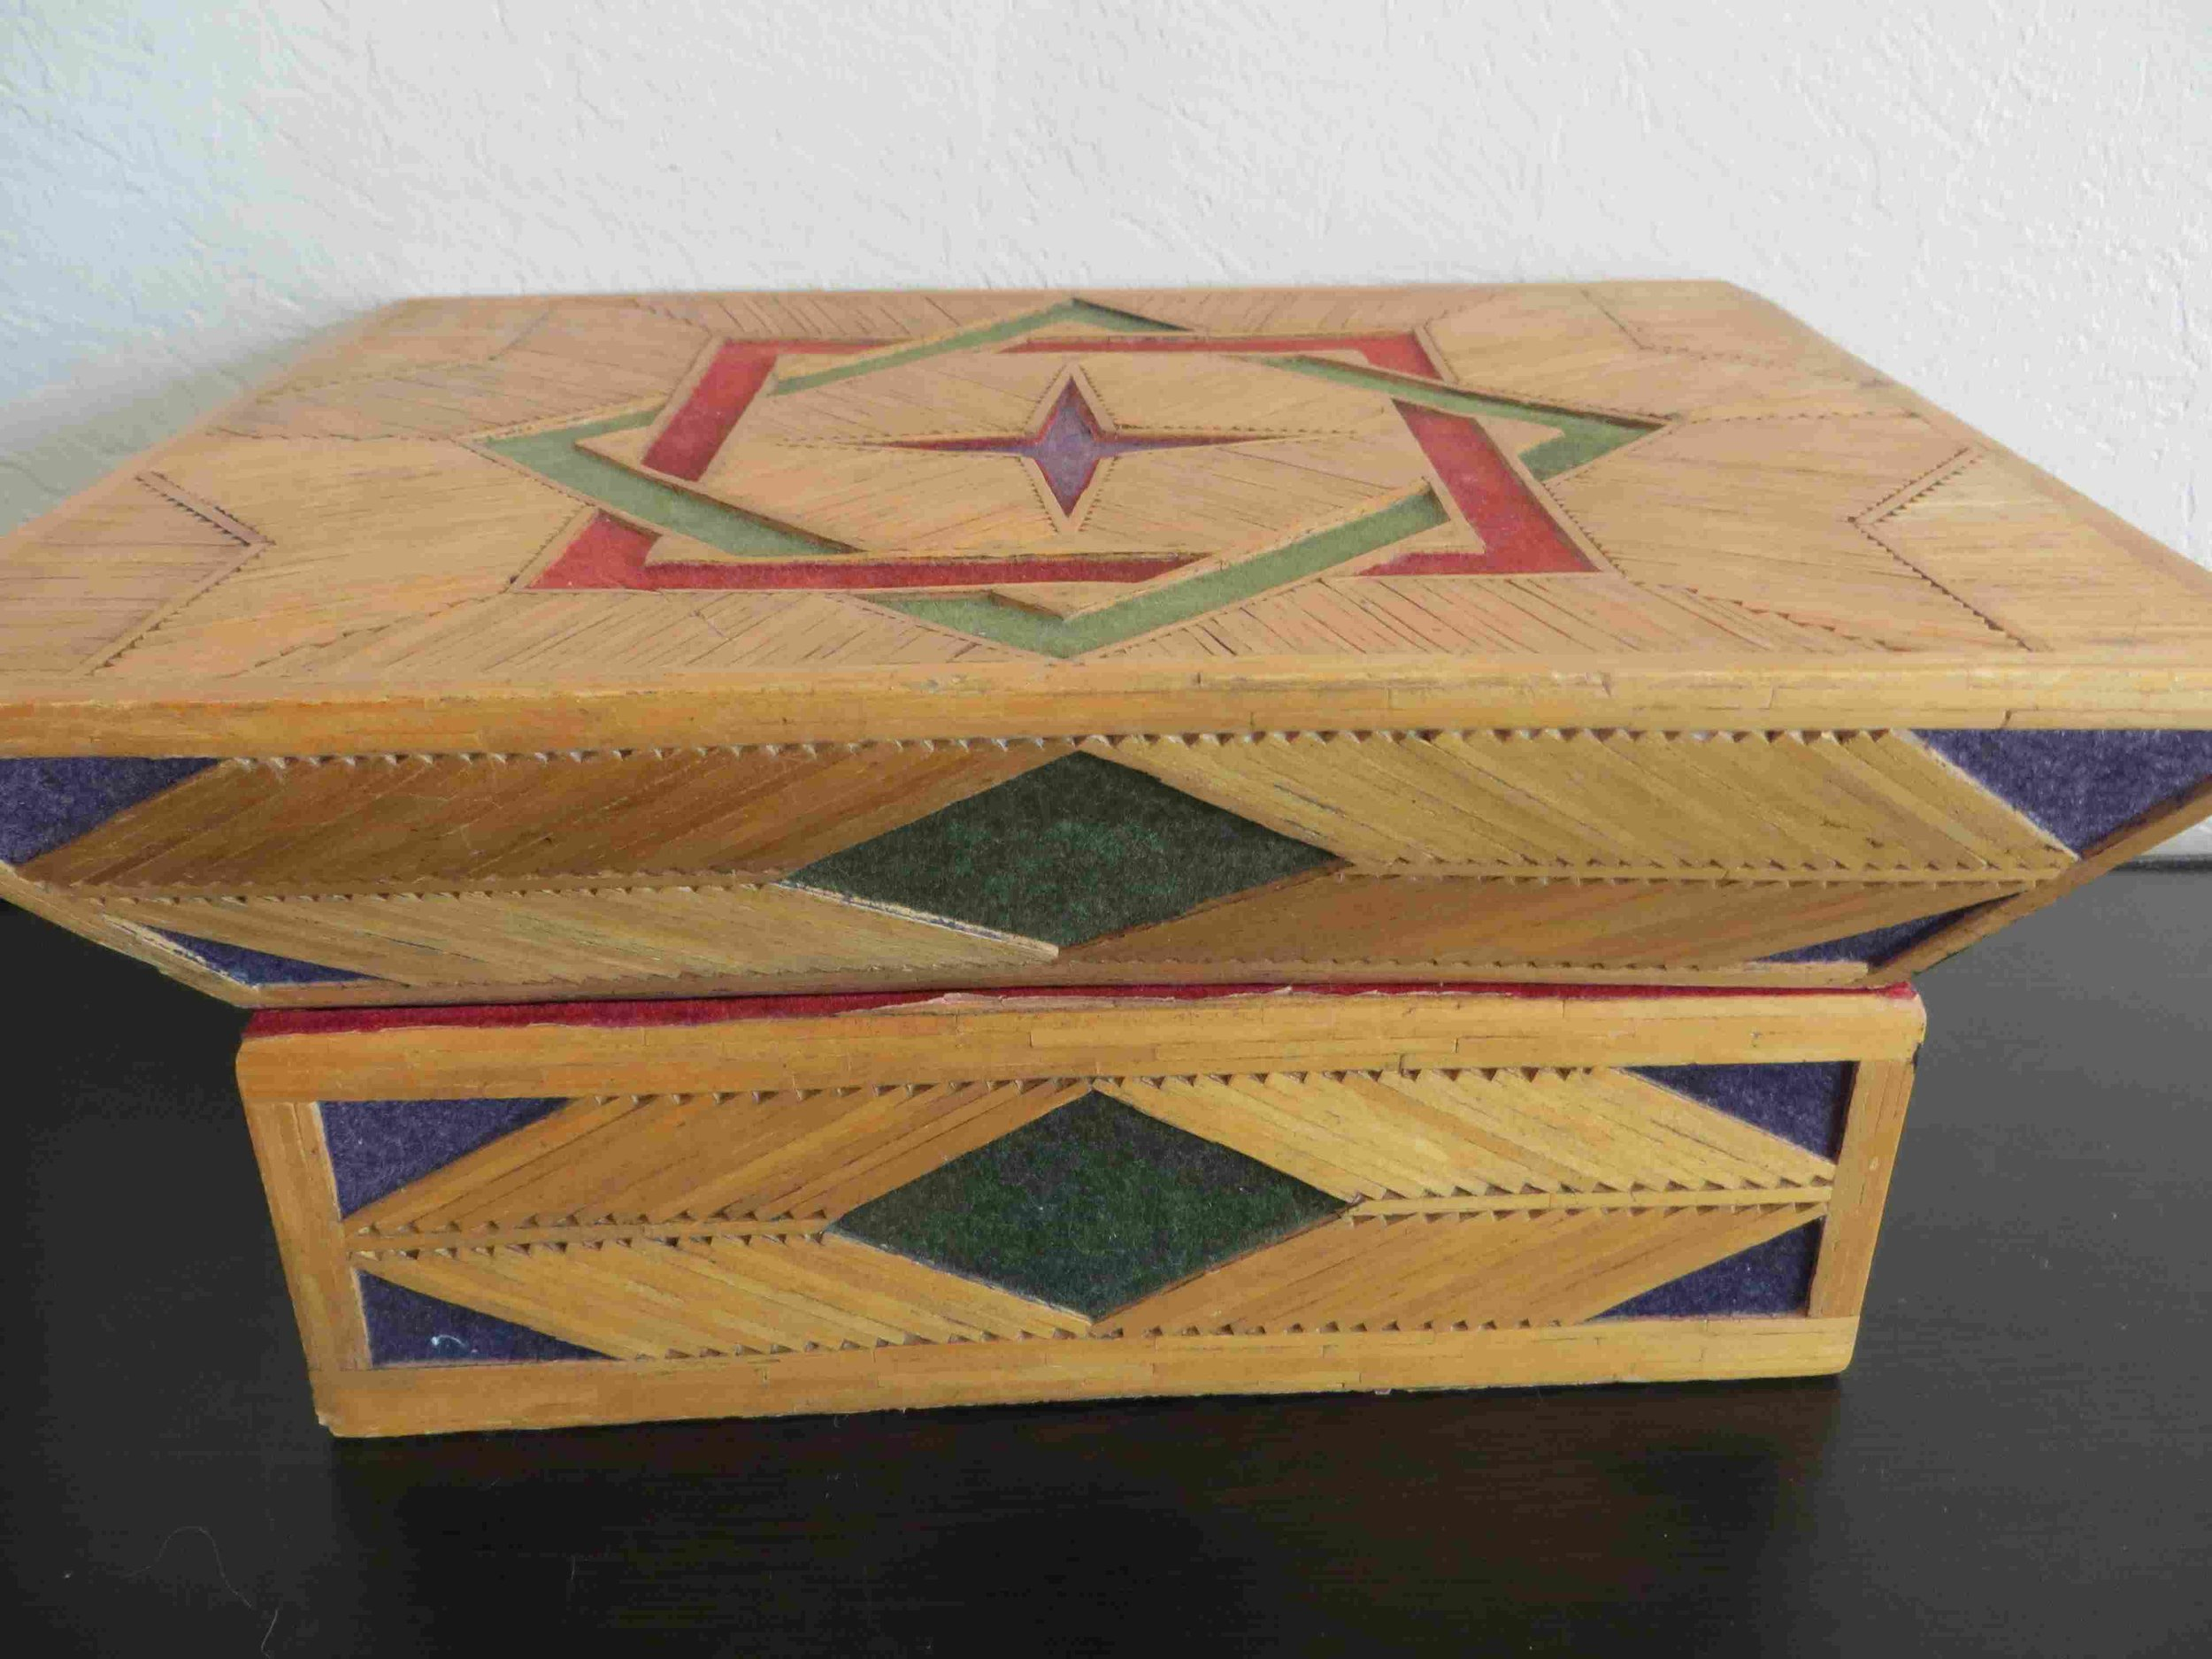 Vintage Inmate Matchstick Jewelry Box-011 - Copy.jpg